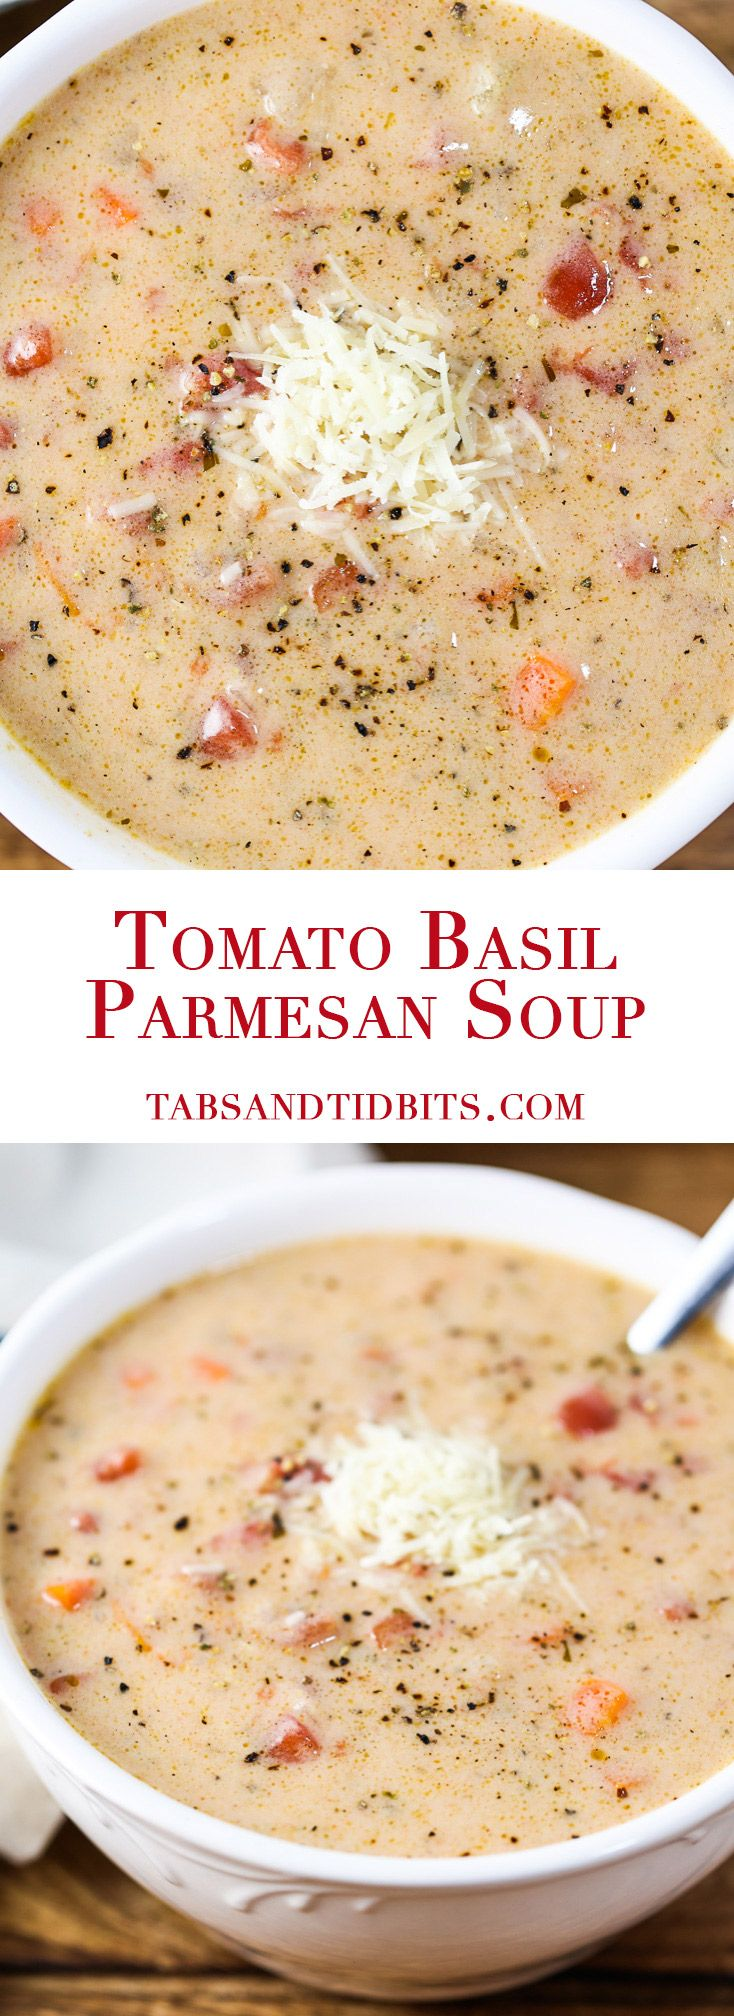 This Tomato Basil Parmesan Soup is comfort food in a bowl!